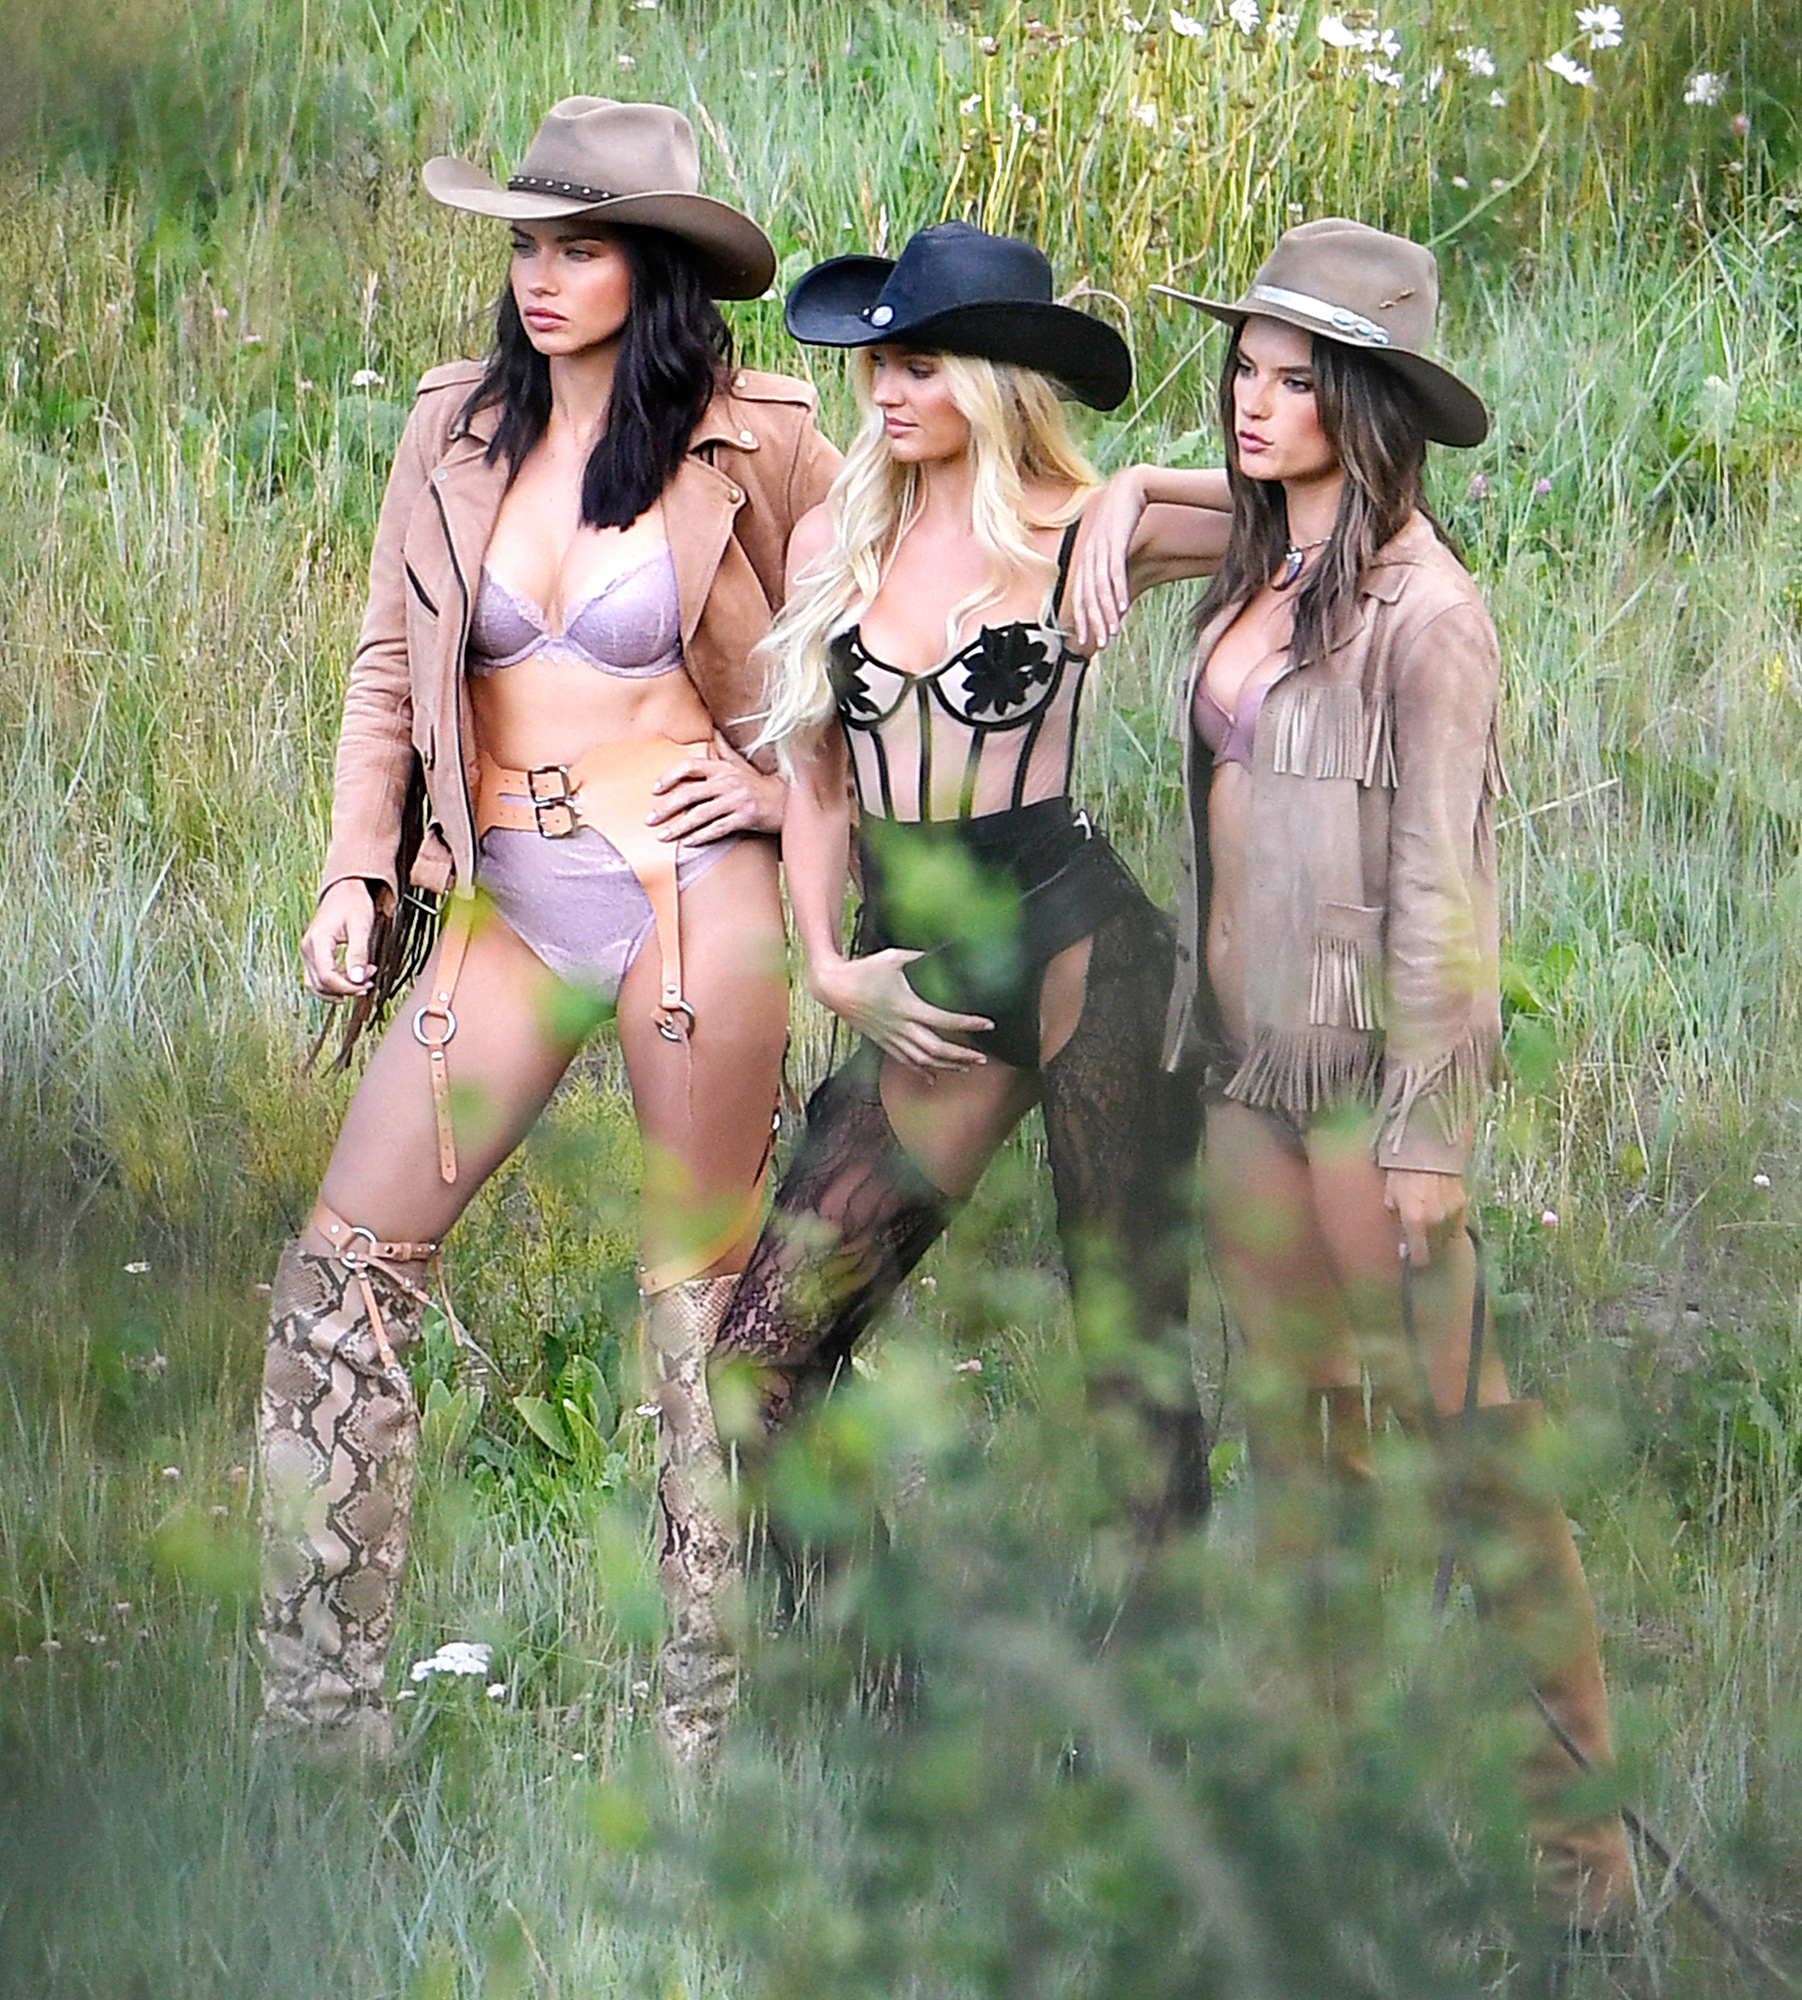 EXCLUSIVE: Supermodels Alessandra Ambrosio, Adriana Lima, & Candice Swanepoel wear sexy cowboy outfits while shooting for Victoria Secret's upcoming holiday catalog in Aspen, CO.